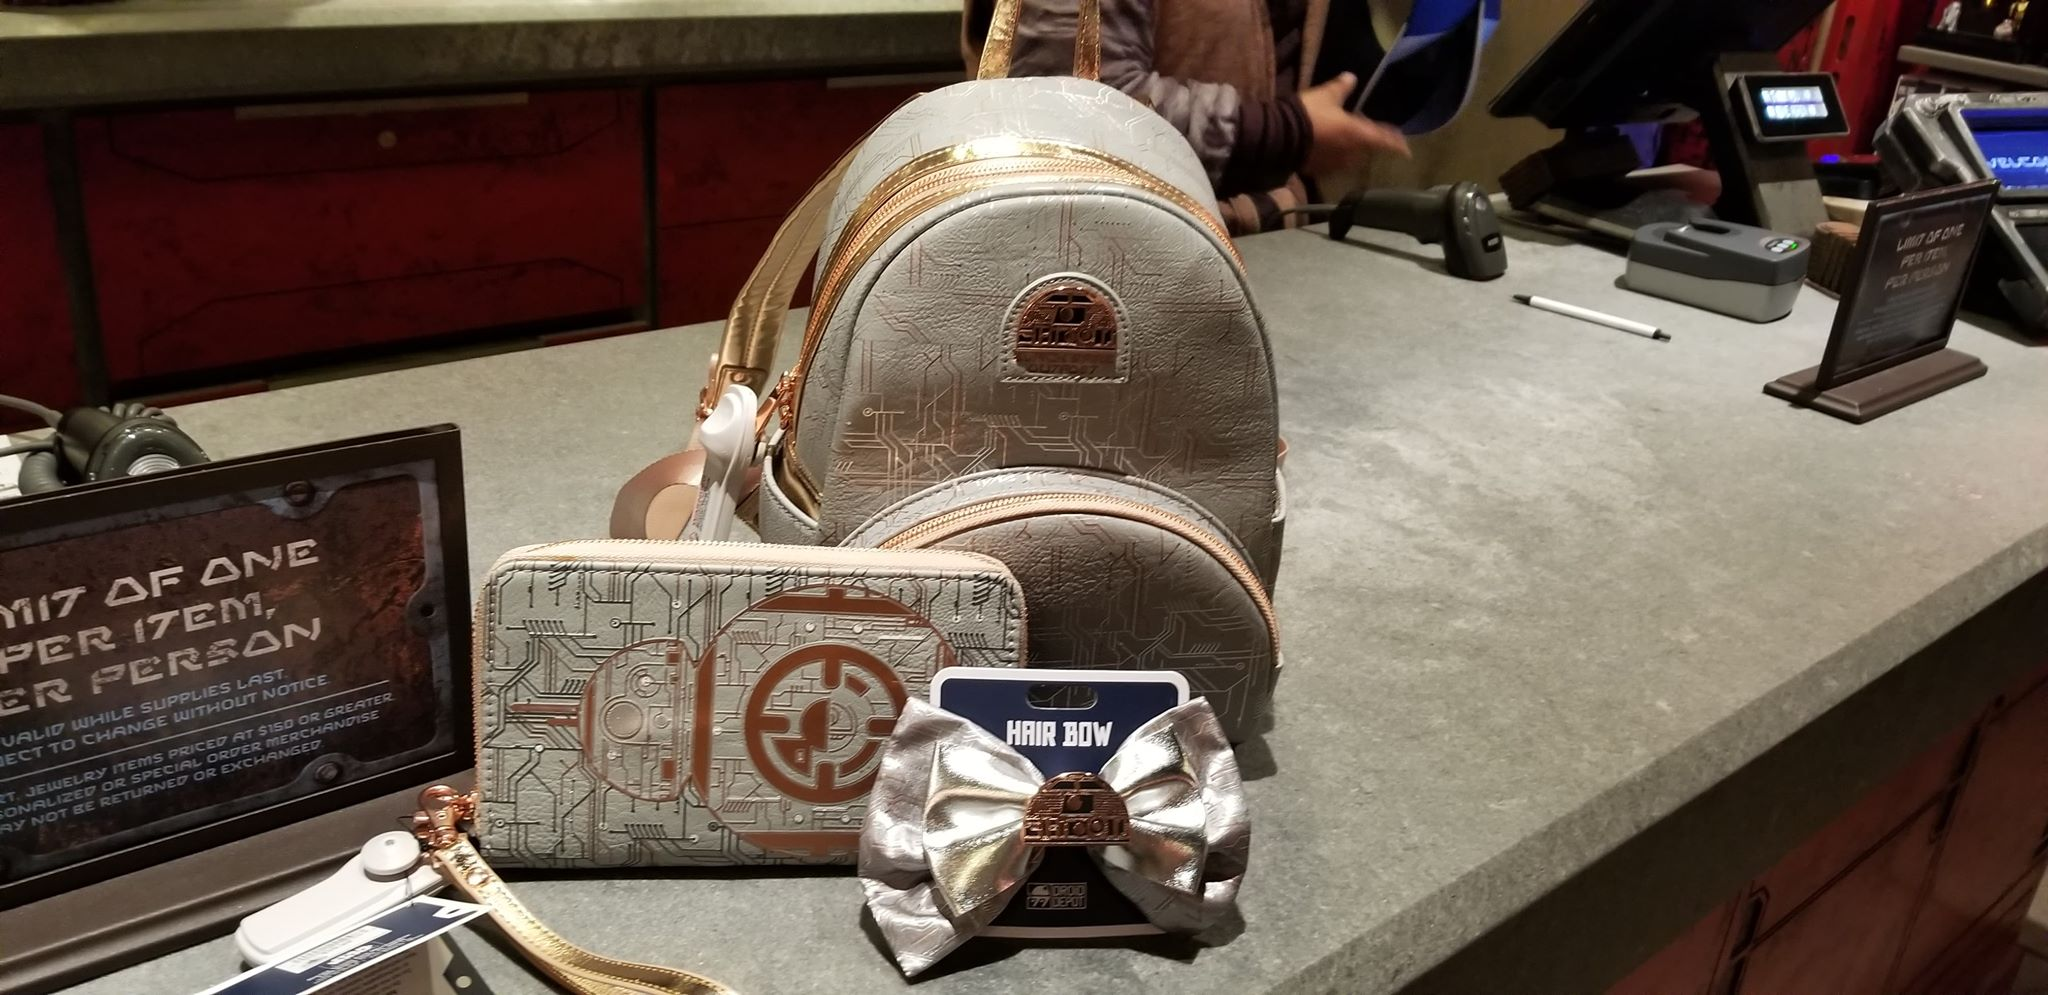 Galactic Cute Droid Accessories From The Droid Depot In Galaxy's Edge 1